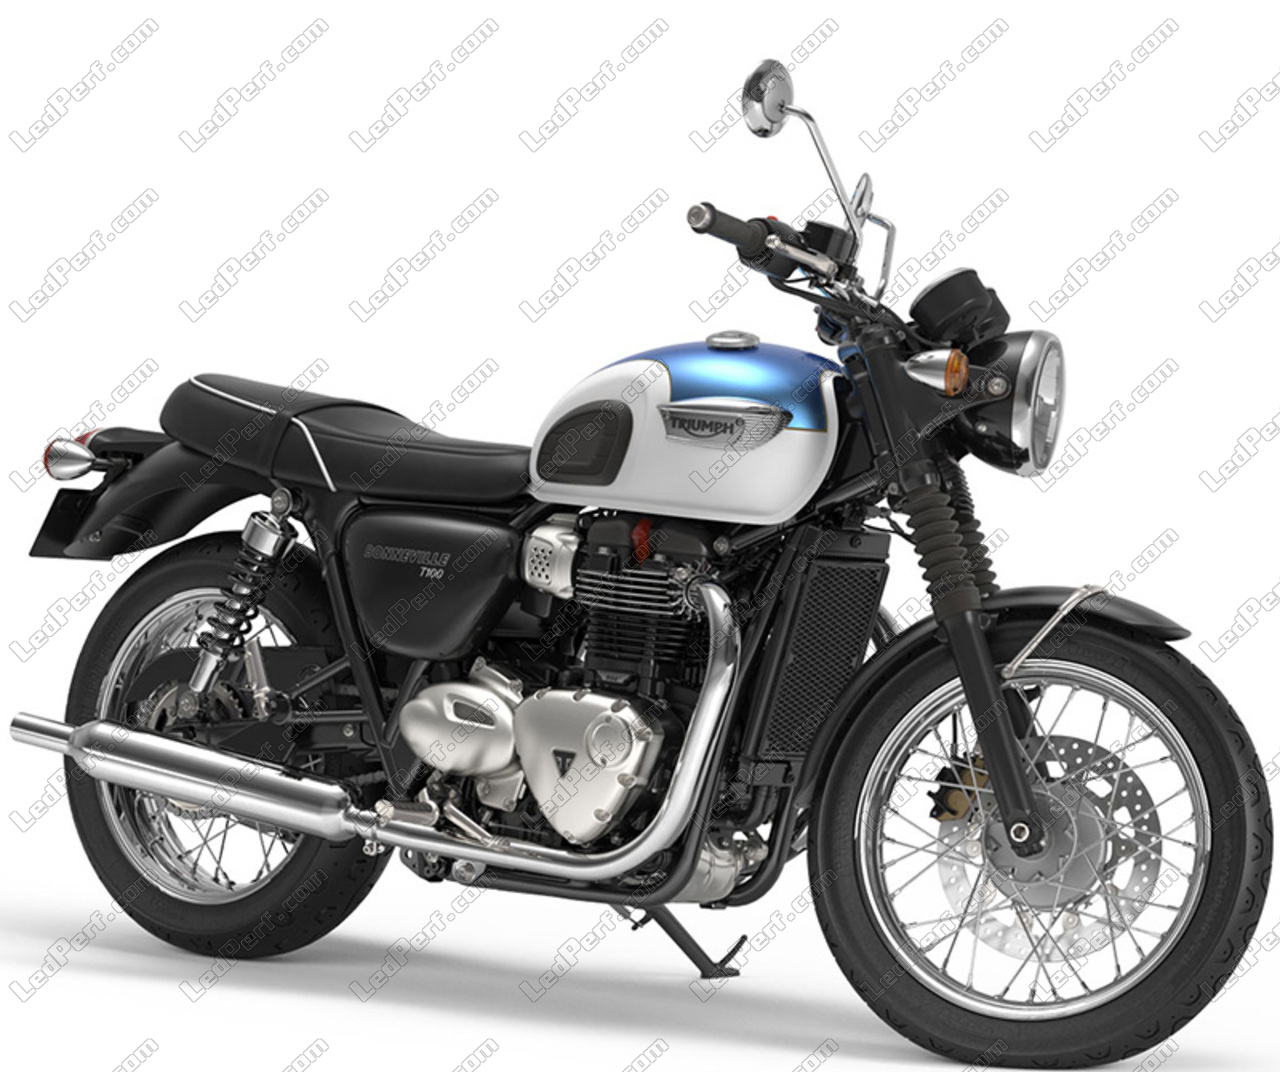 Round Led Headlight For Triumph Bonneville T100 5 Year Warranty